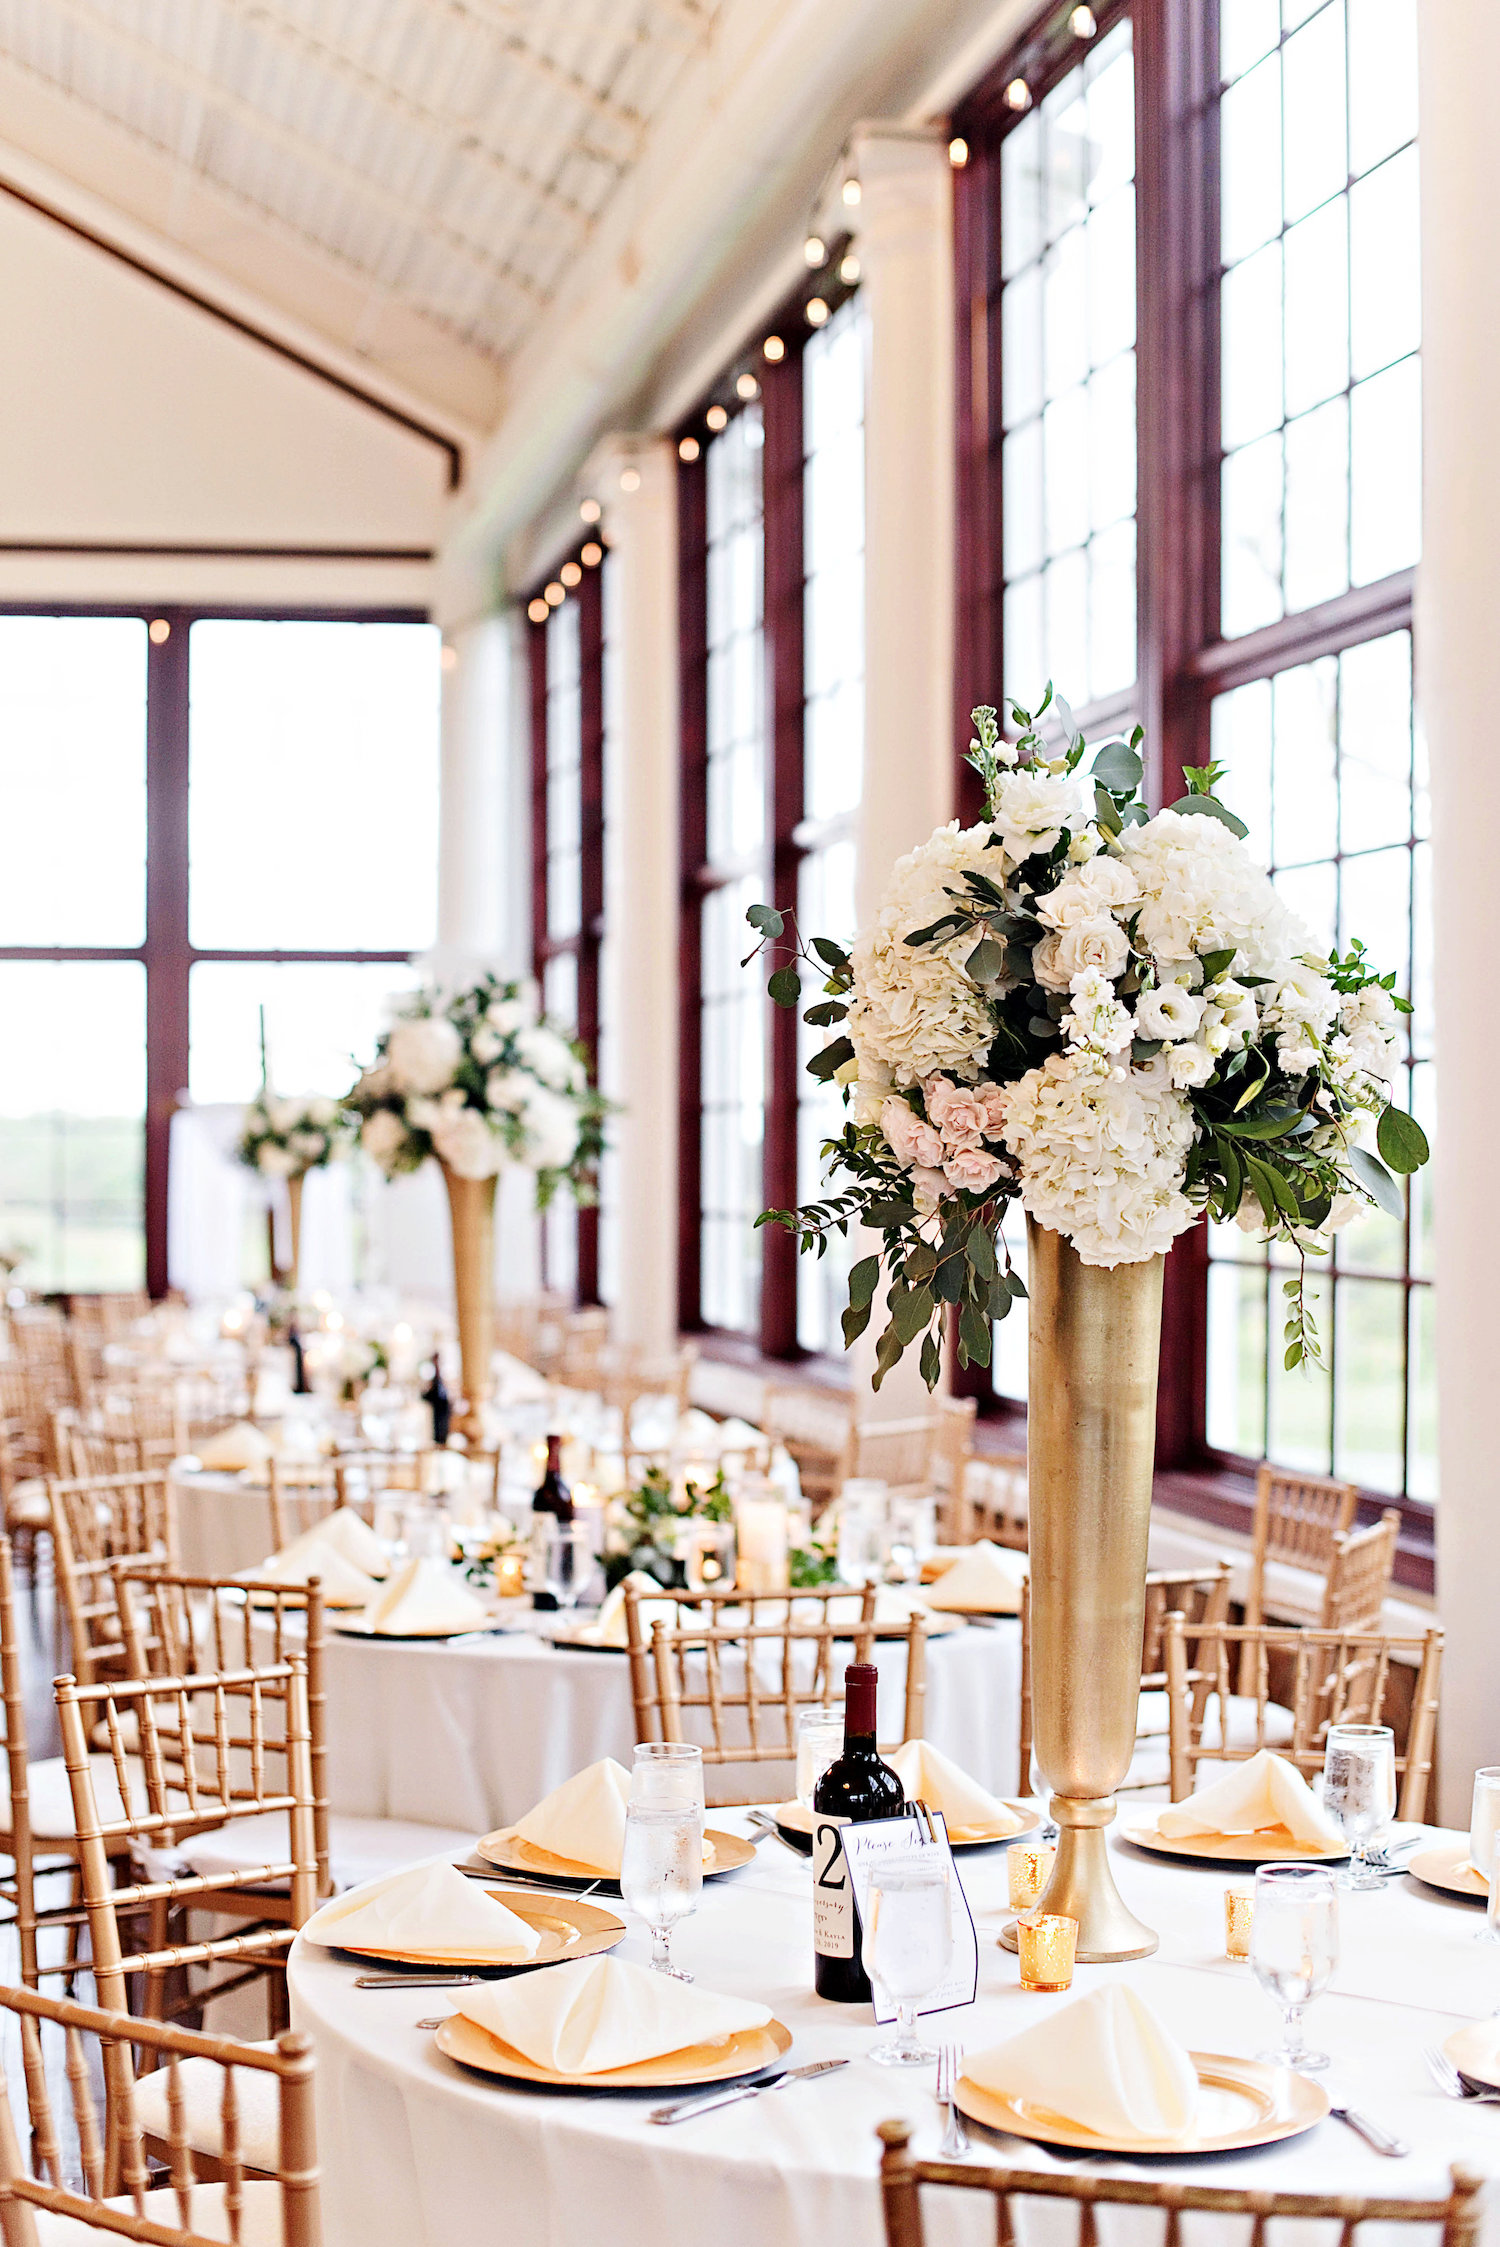 The-Photography-Smiths-Tall-Centerpieces-Gold-Pilsner-white-flowers-greenery.jpg